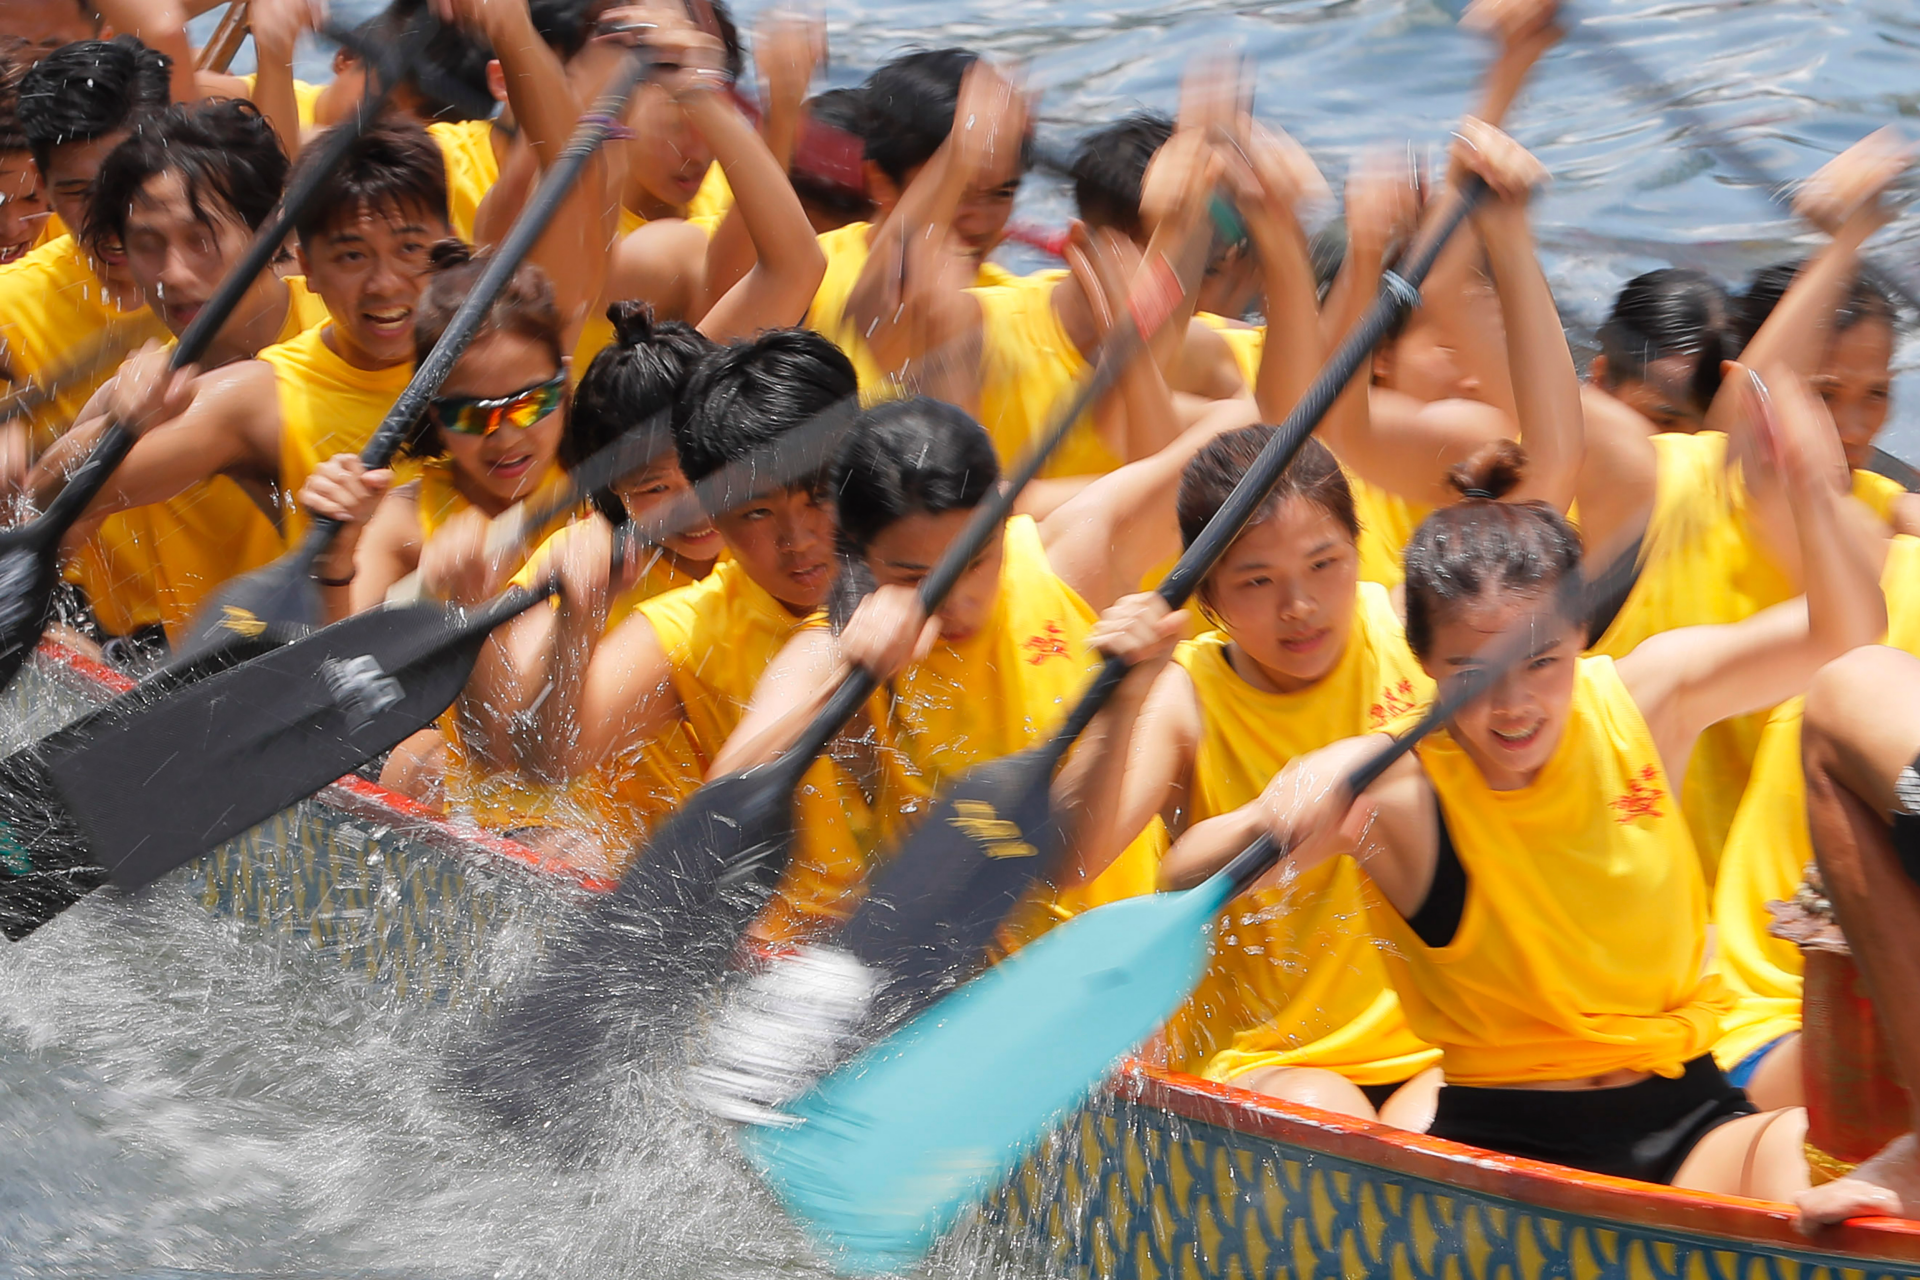 Westlake Legal Group ContentBroker_contentid-f30738e4c50b4bee9bbcc22618725b51-1 Chinese take to the seas in annual dragon boat races Hong Kong fox-news/world/world-regions/asia fox-news/world fnc/world fnc Associated Press article 0a5ae4f6-1e68-538c-9639-af47c7c7e041